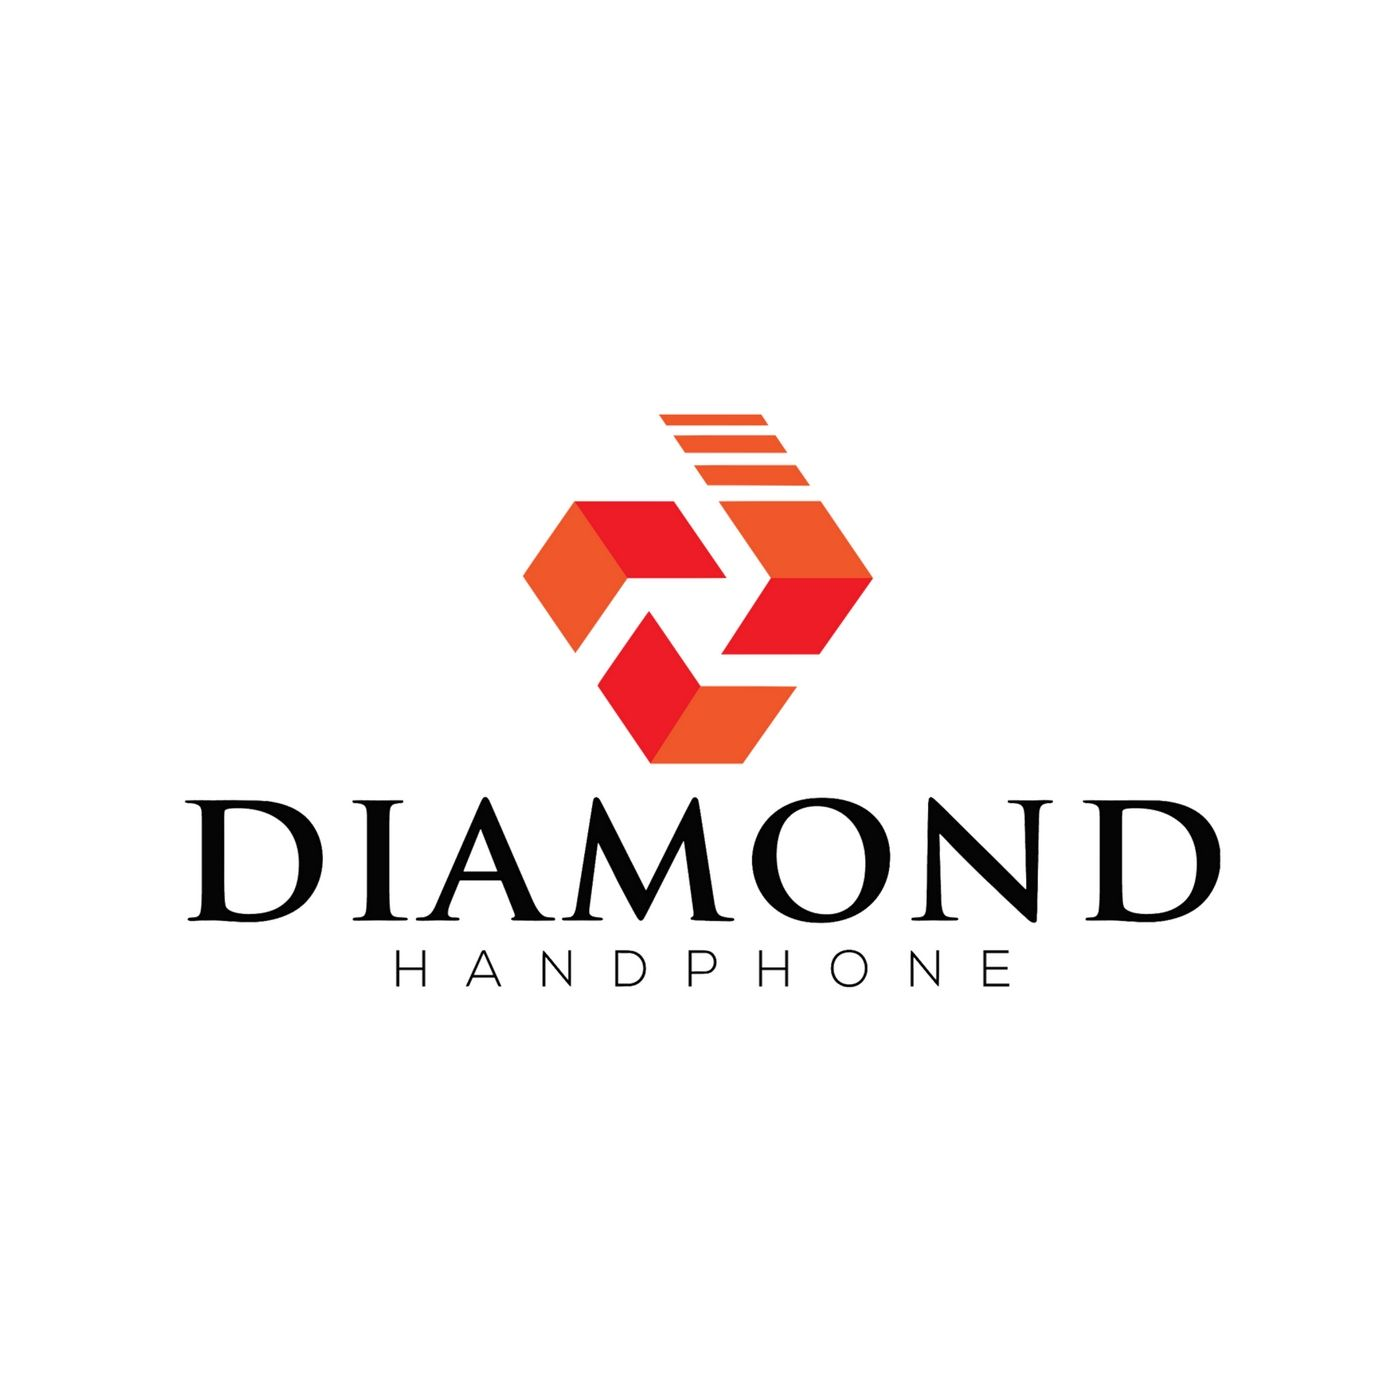 Diamond Handphone